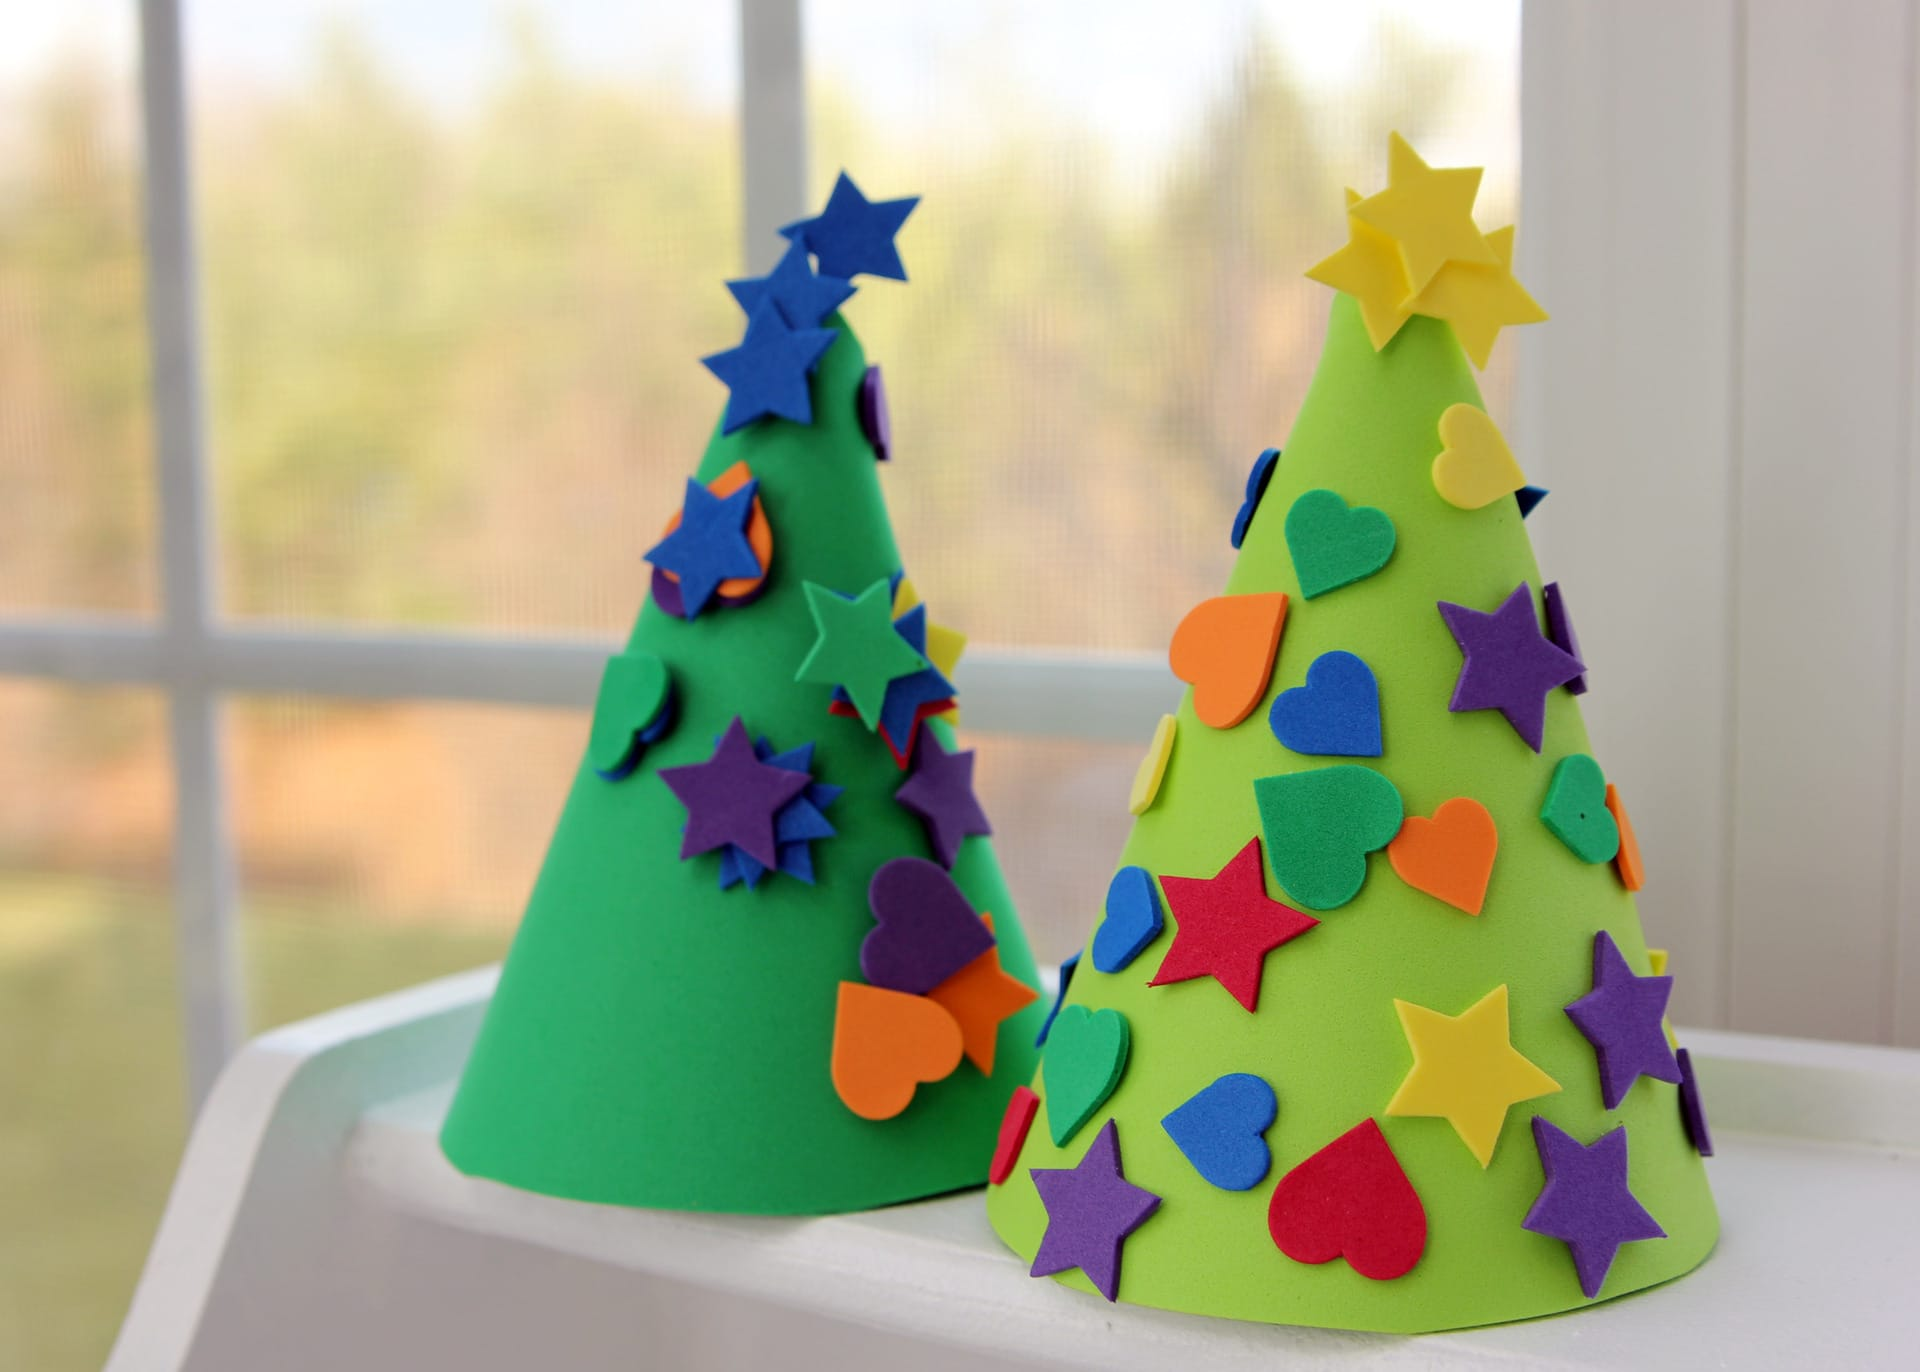 Foam Christmas Trees